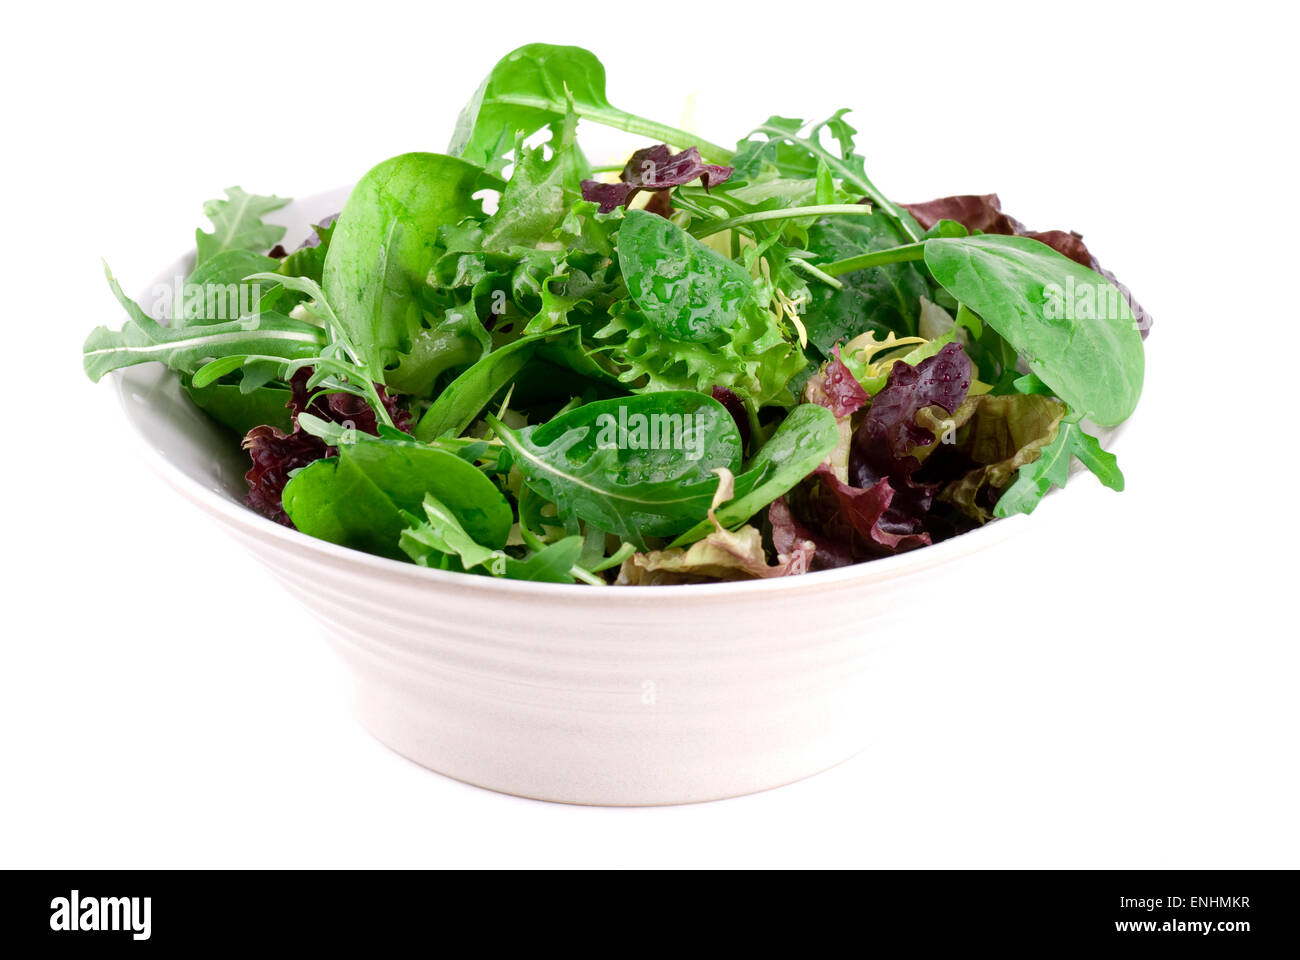 Spinach, arugula, lollo rosso and green salad in a ceramic bowl. - Stock Image